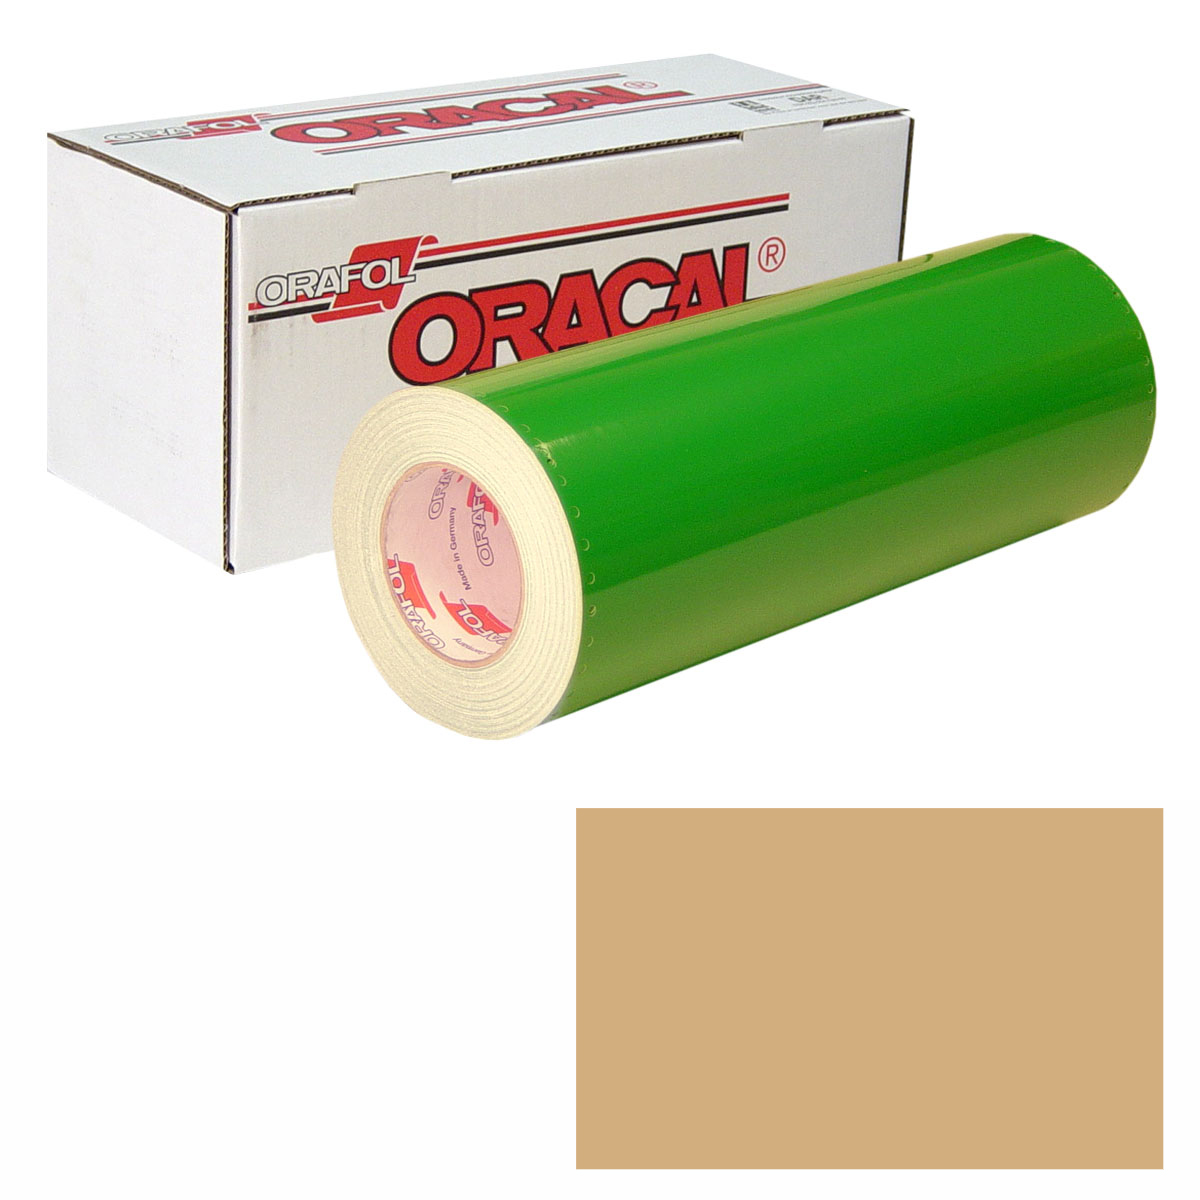 ORACAL 751 15In X 50Yd 081 Light Brown